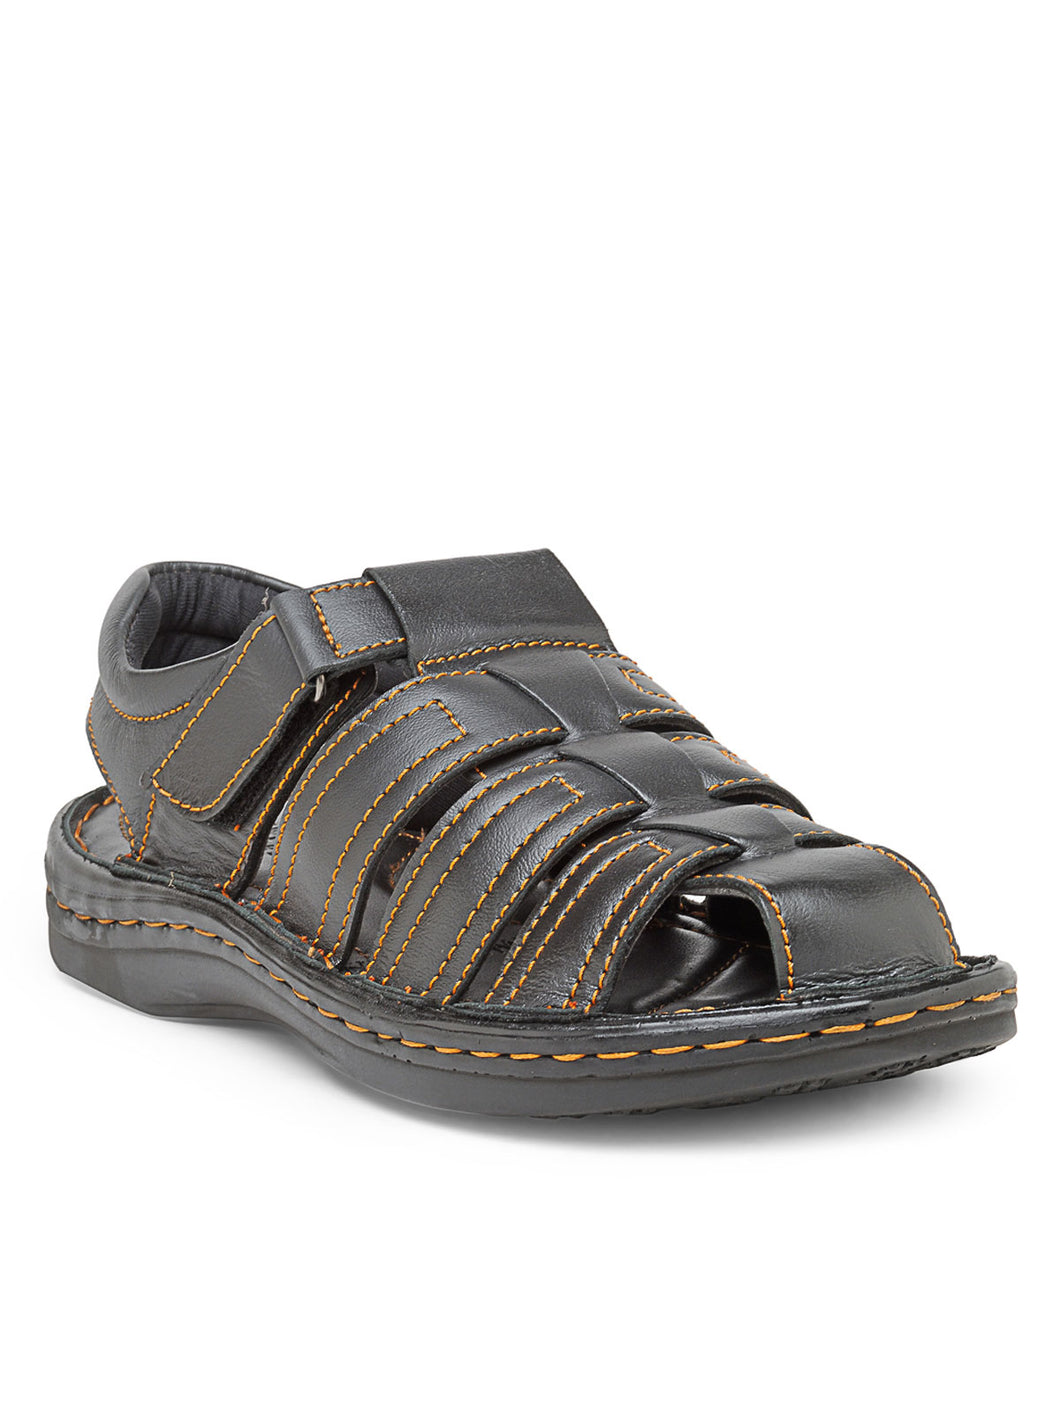 Teakwood Men's Real Leather Sandals